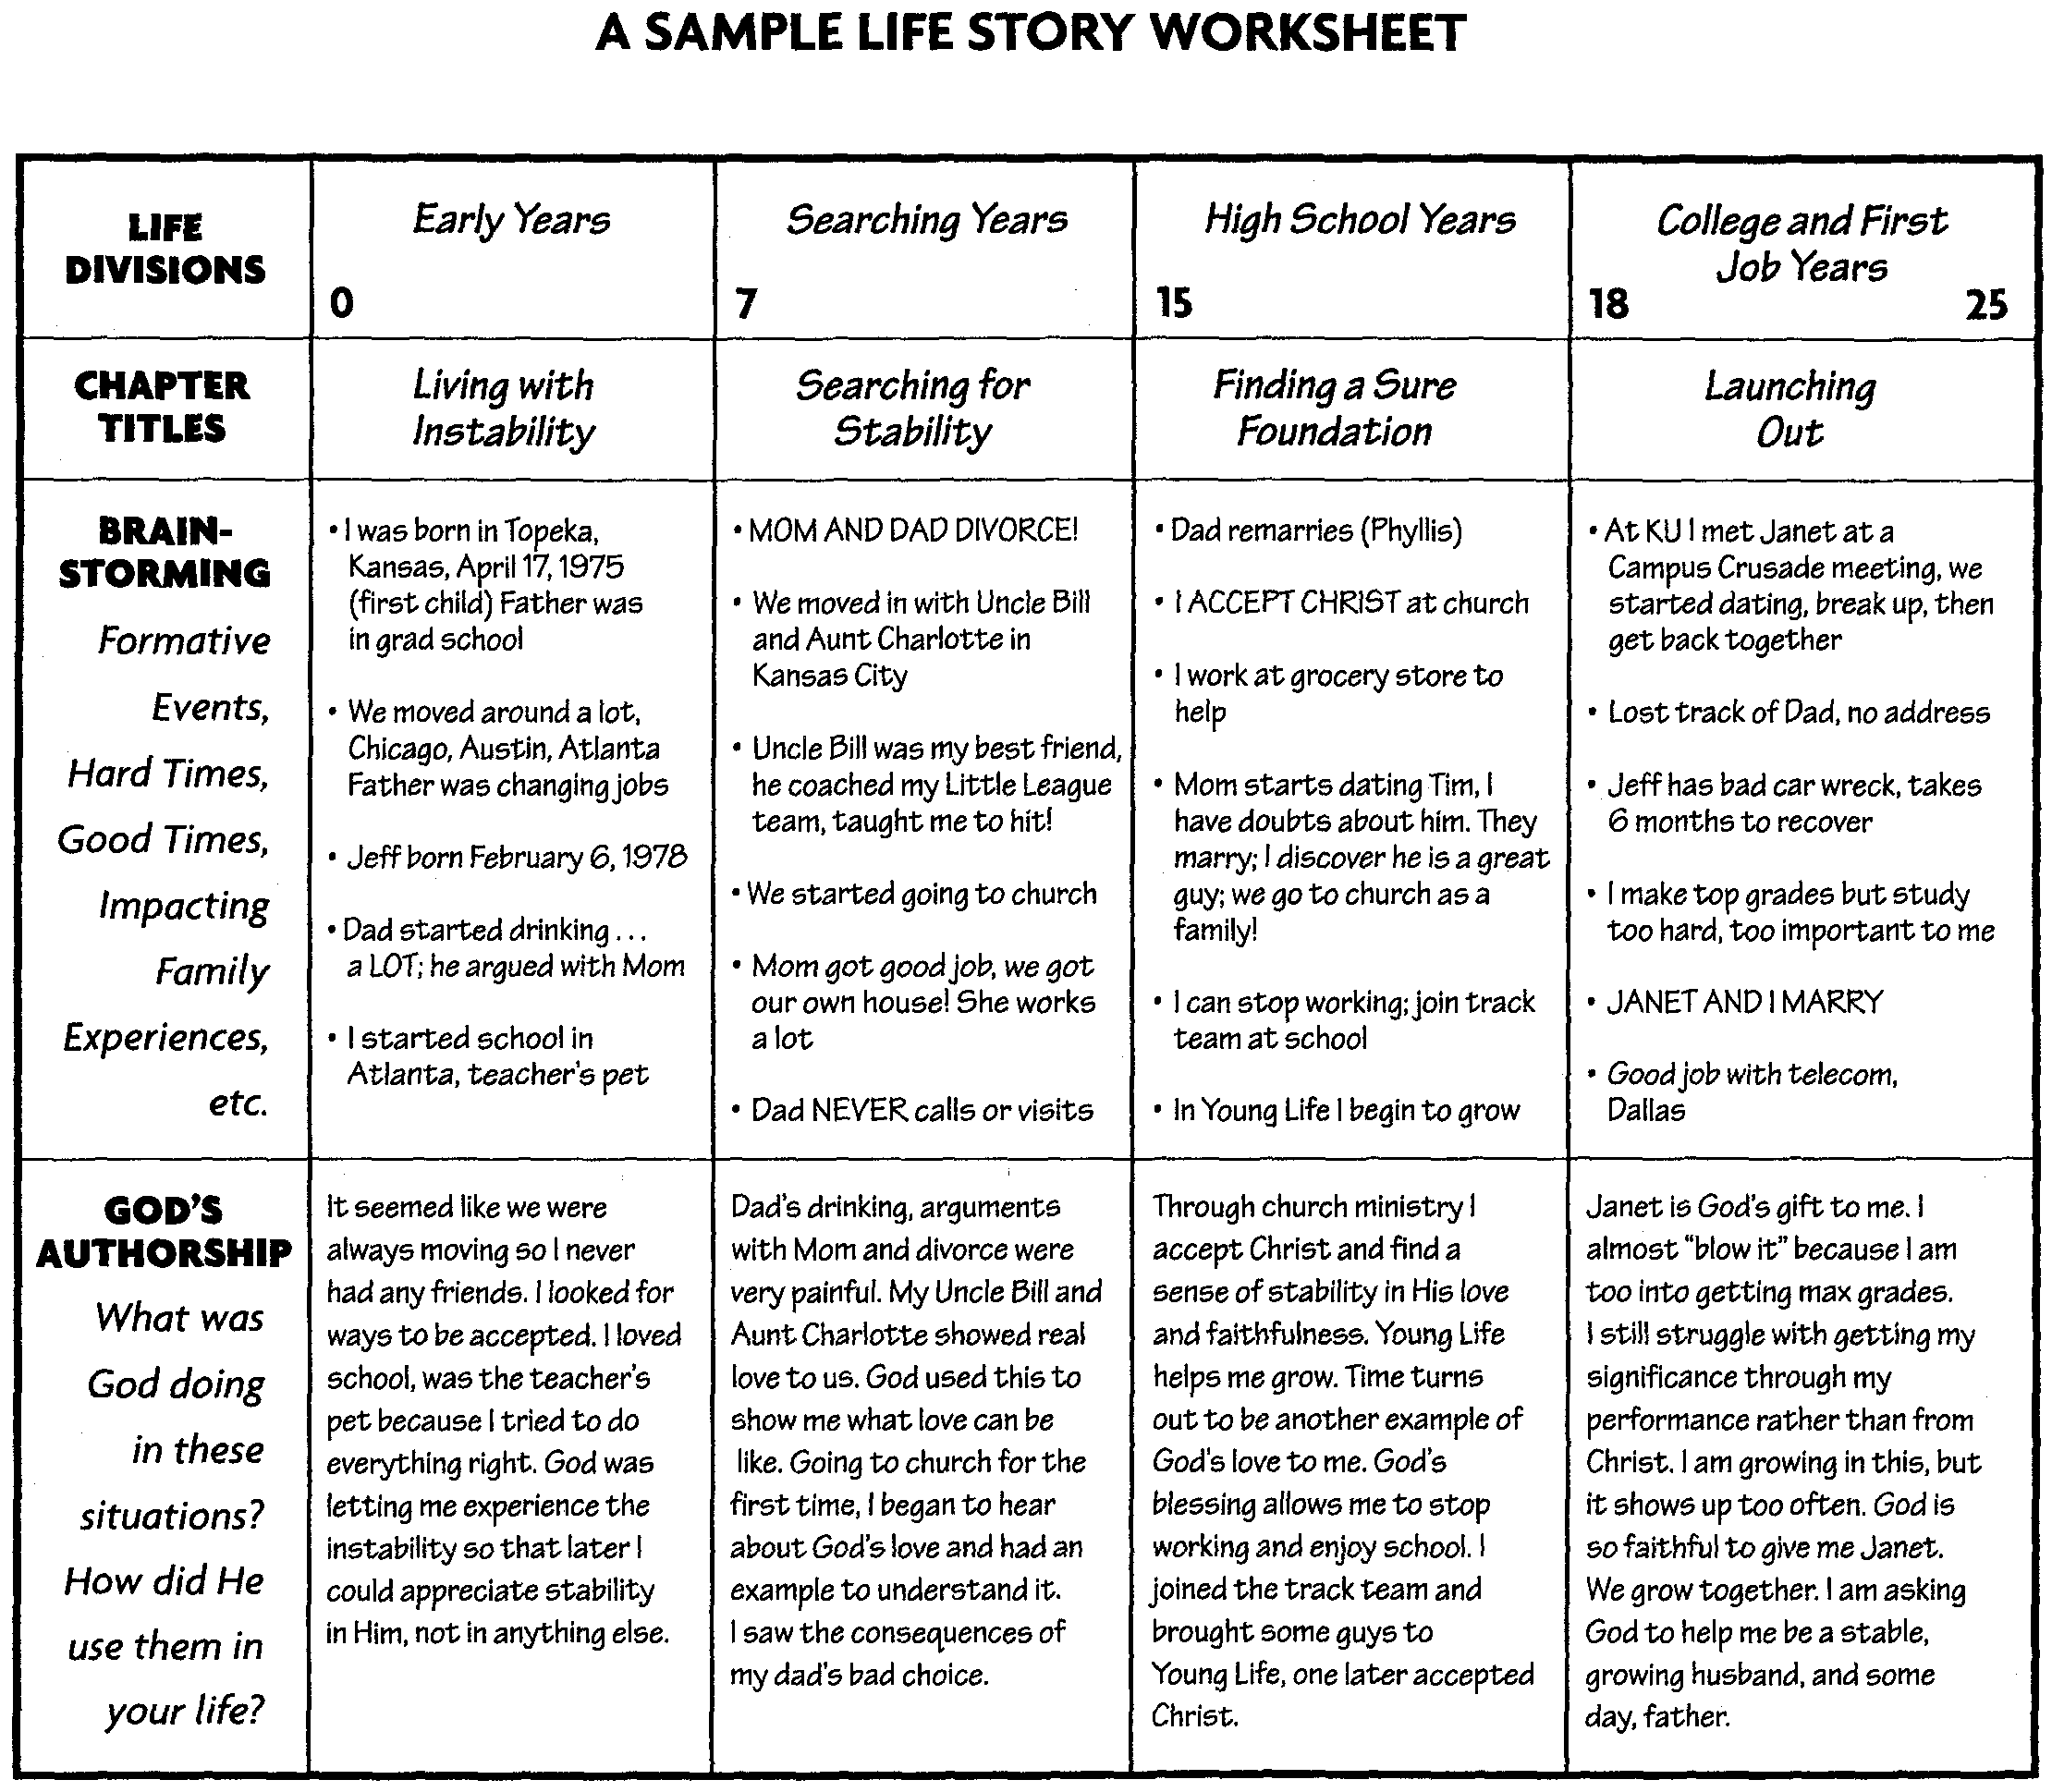 worksheet Forgiveness Worksheets faith library sample copy of the life division worksheet